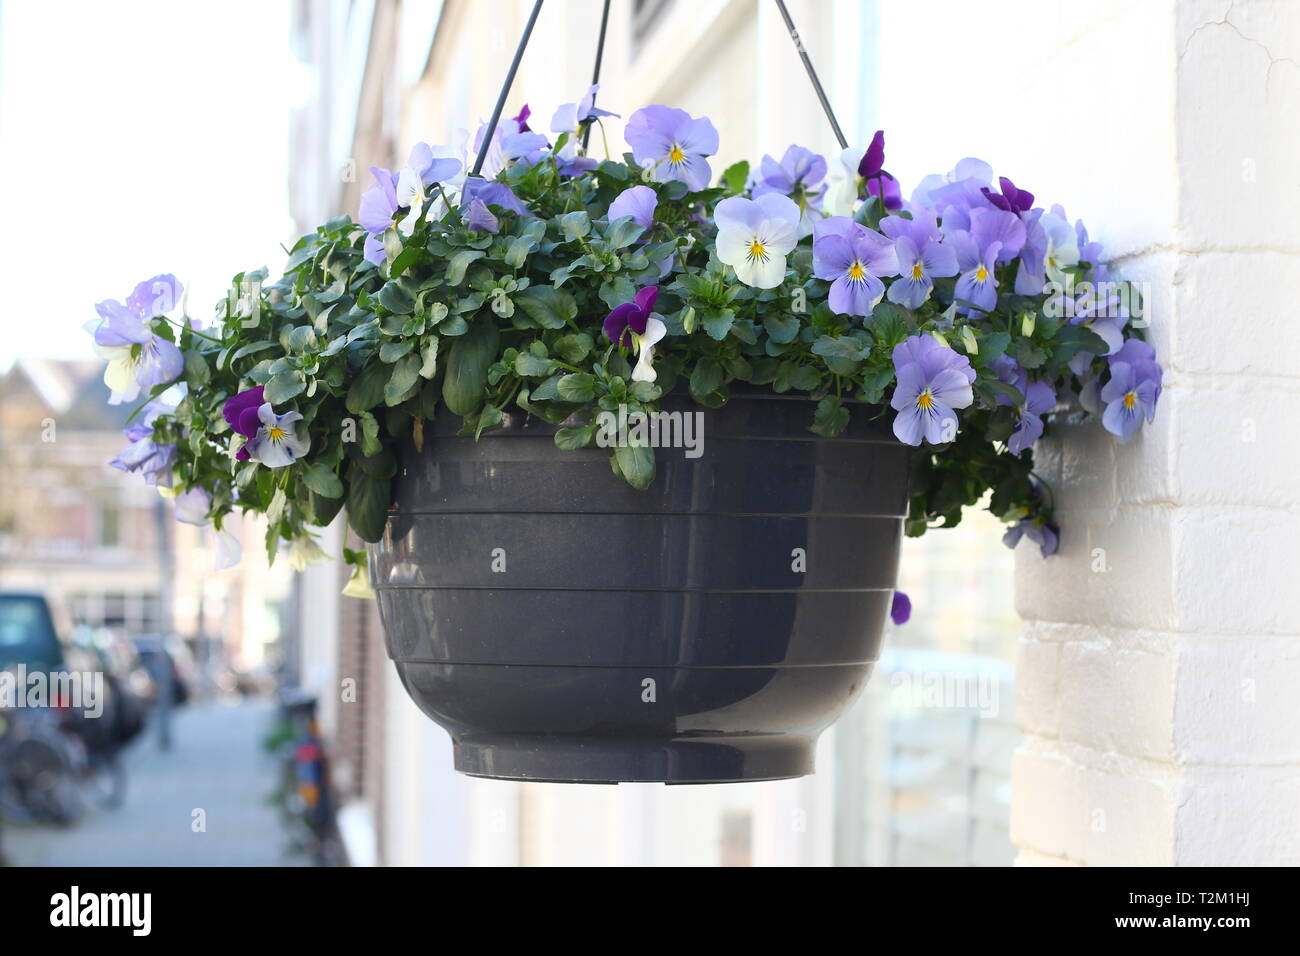 In a Dutch street with well maintained 19th century houses the residents attache viola plants in baskets - Stock Image